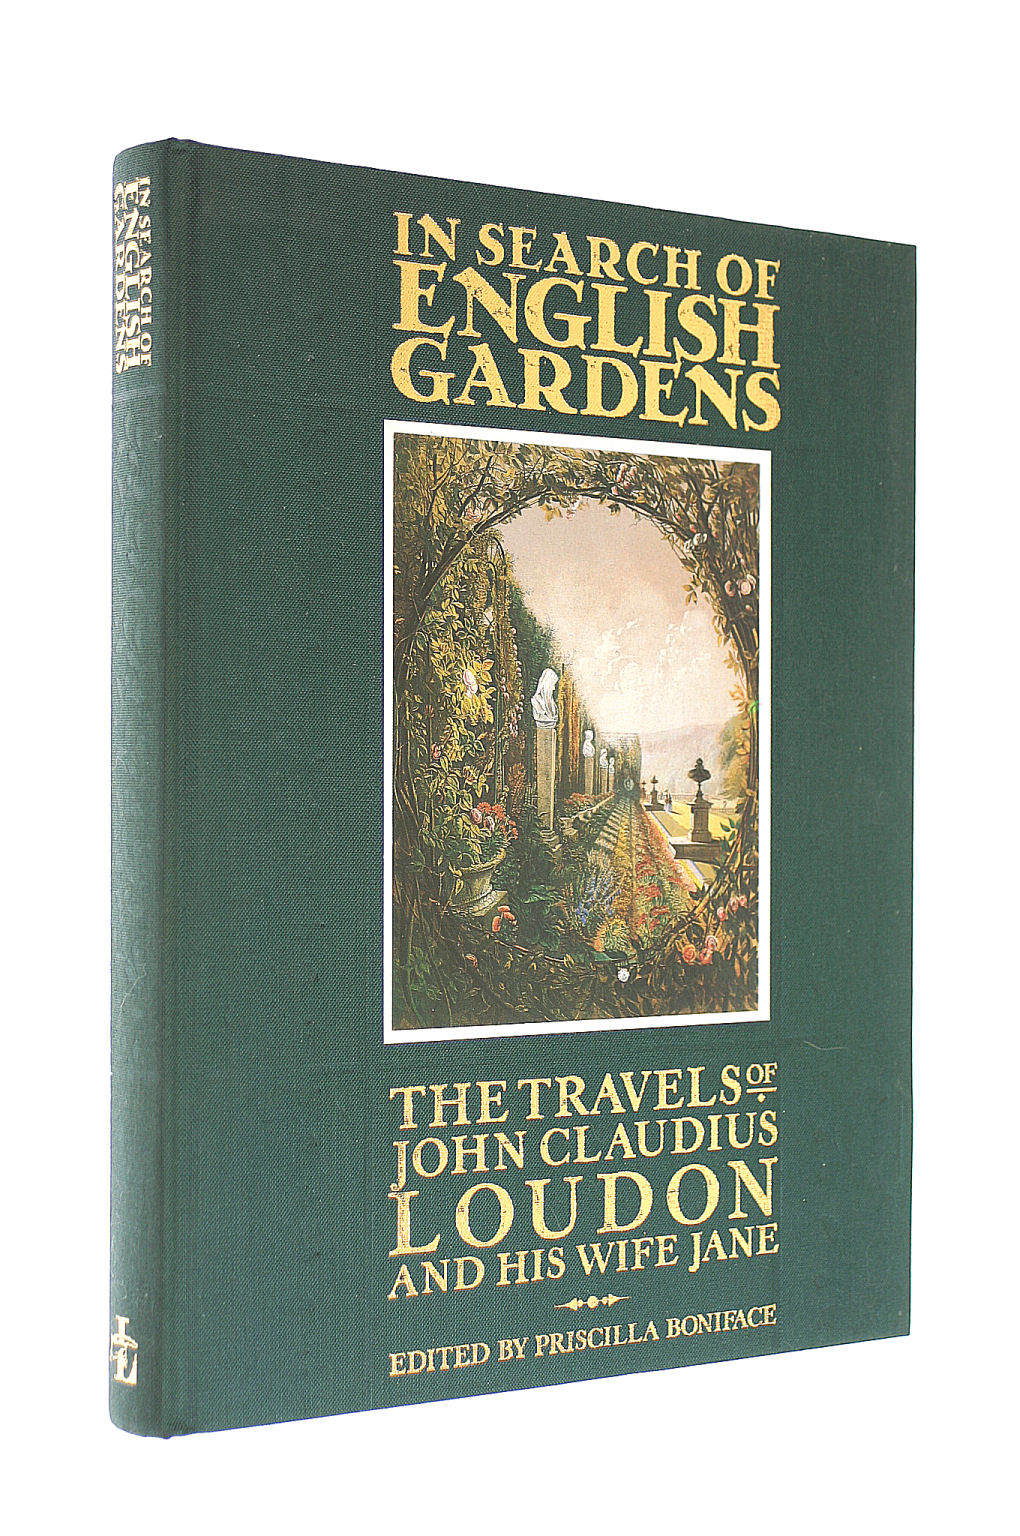 Image for In Search of English Gardens: The Travels of John Claudius Loudon and His Wife Jane